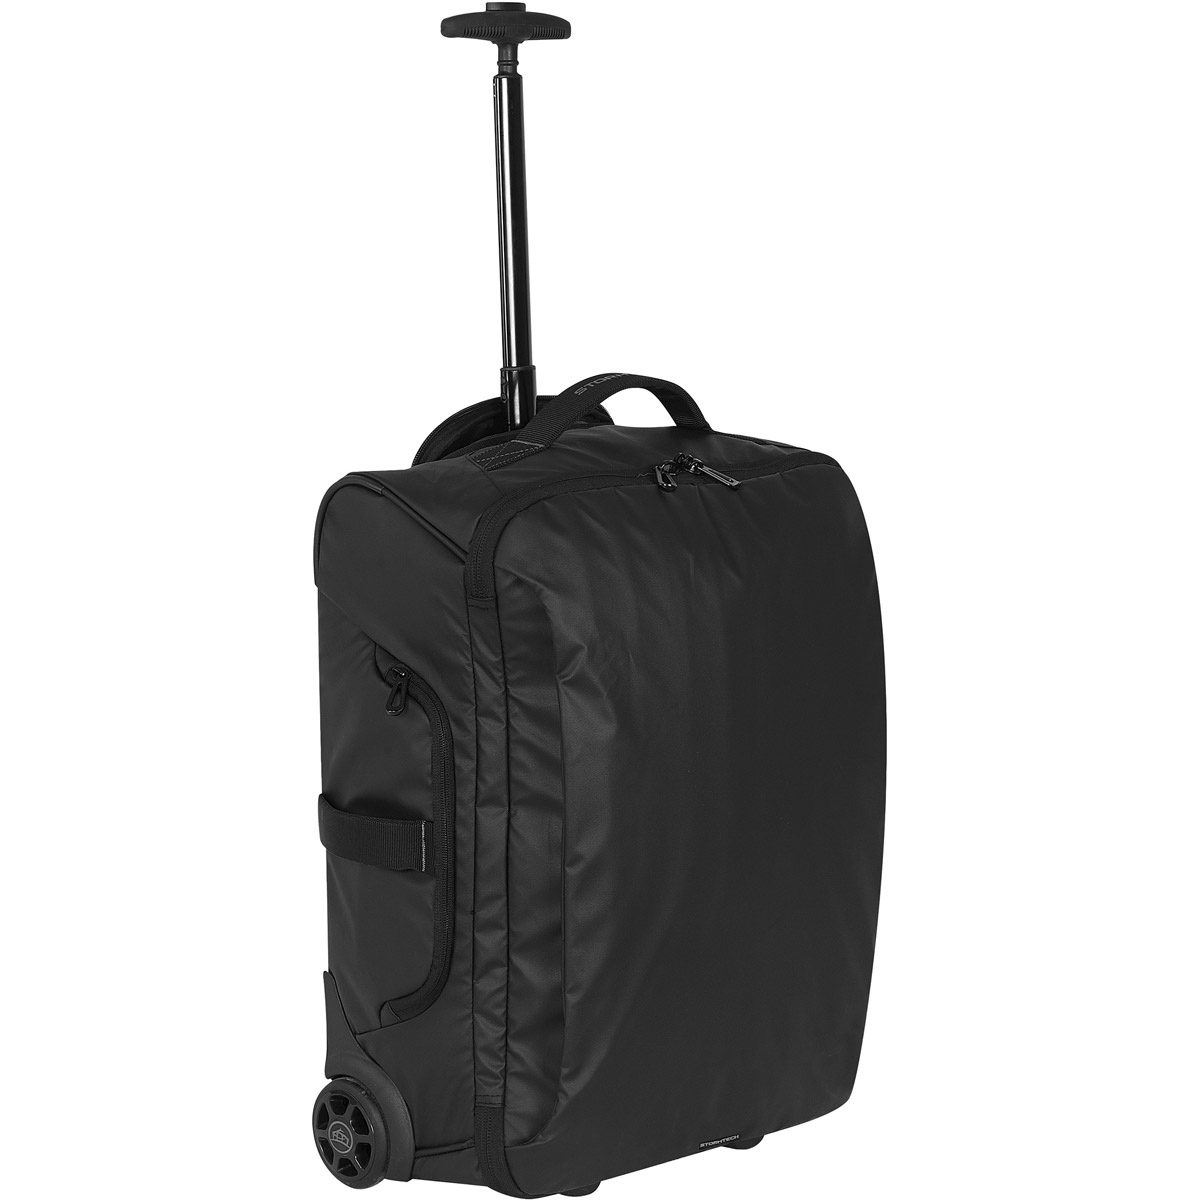 Freestyle Carry On Luggage